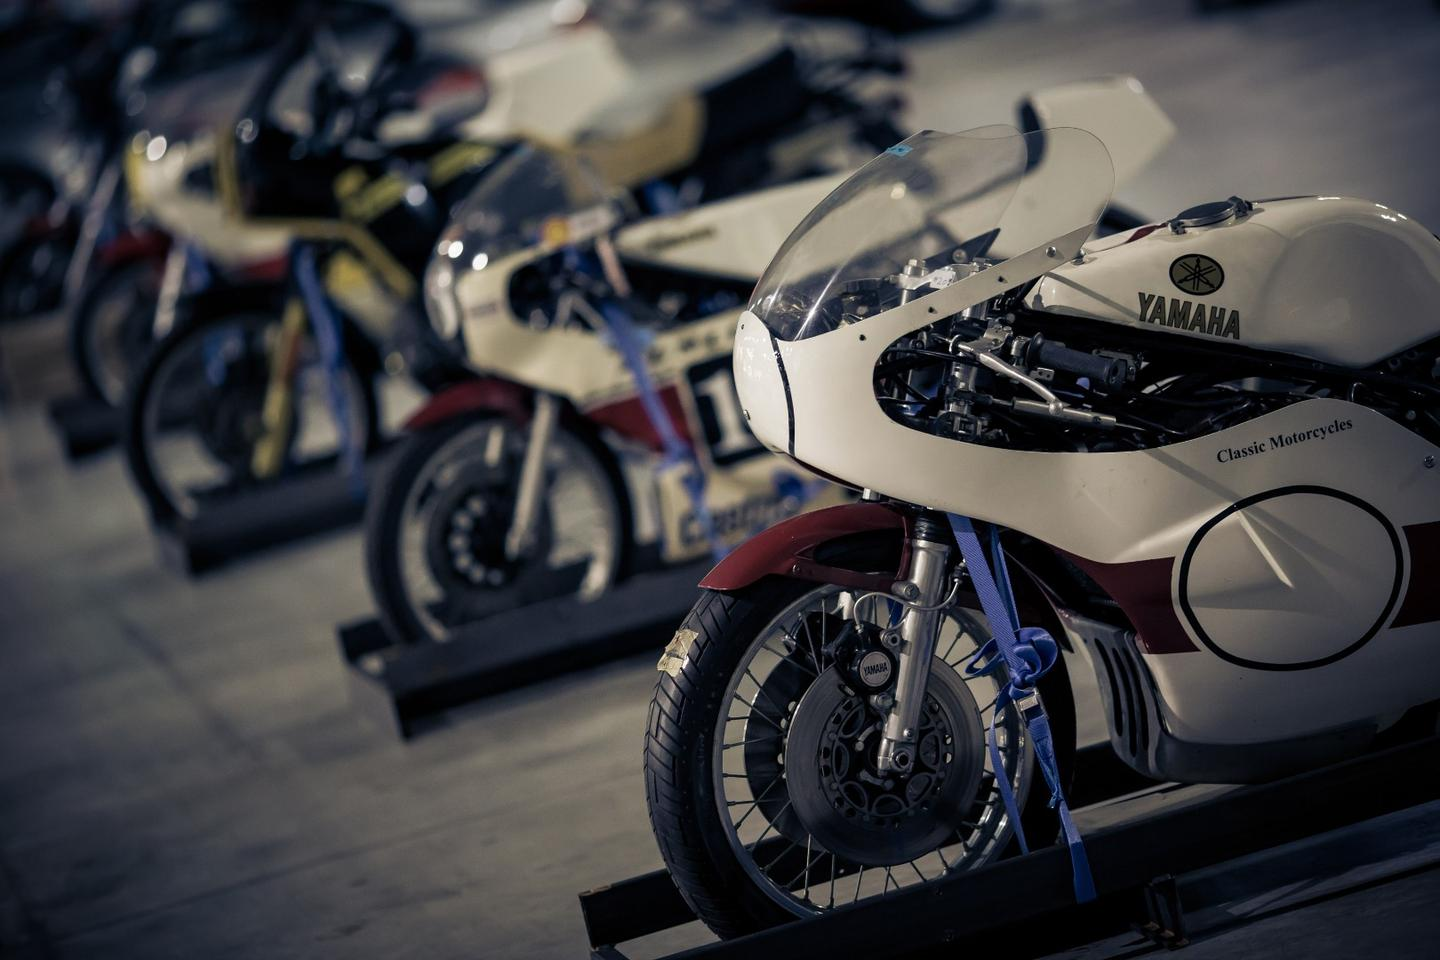 Just about every significant model of Yamaha's TZ production racing range was included in the collection.